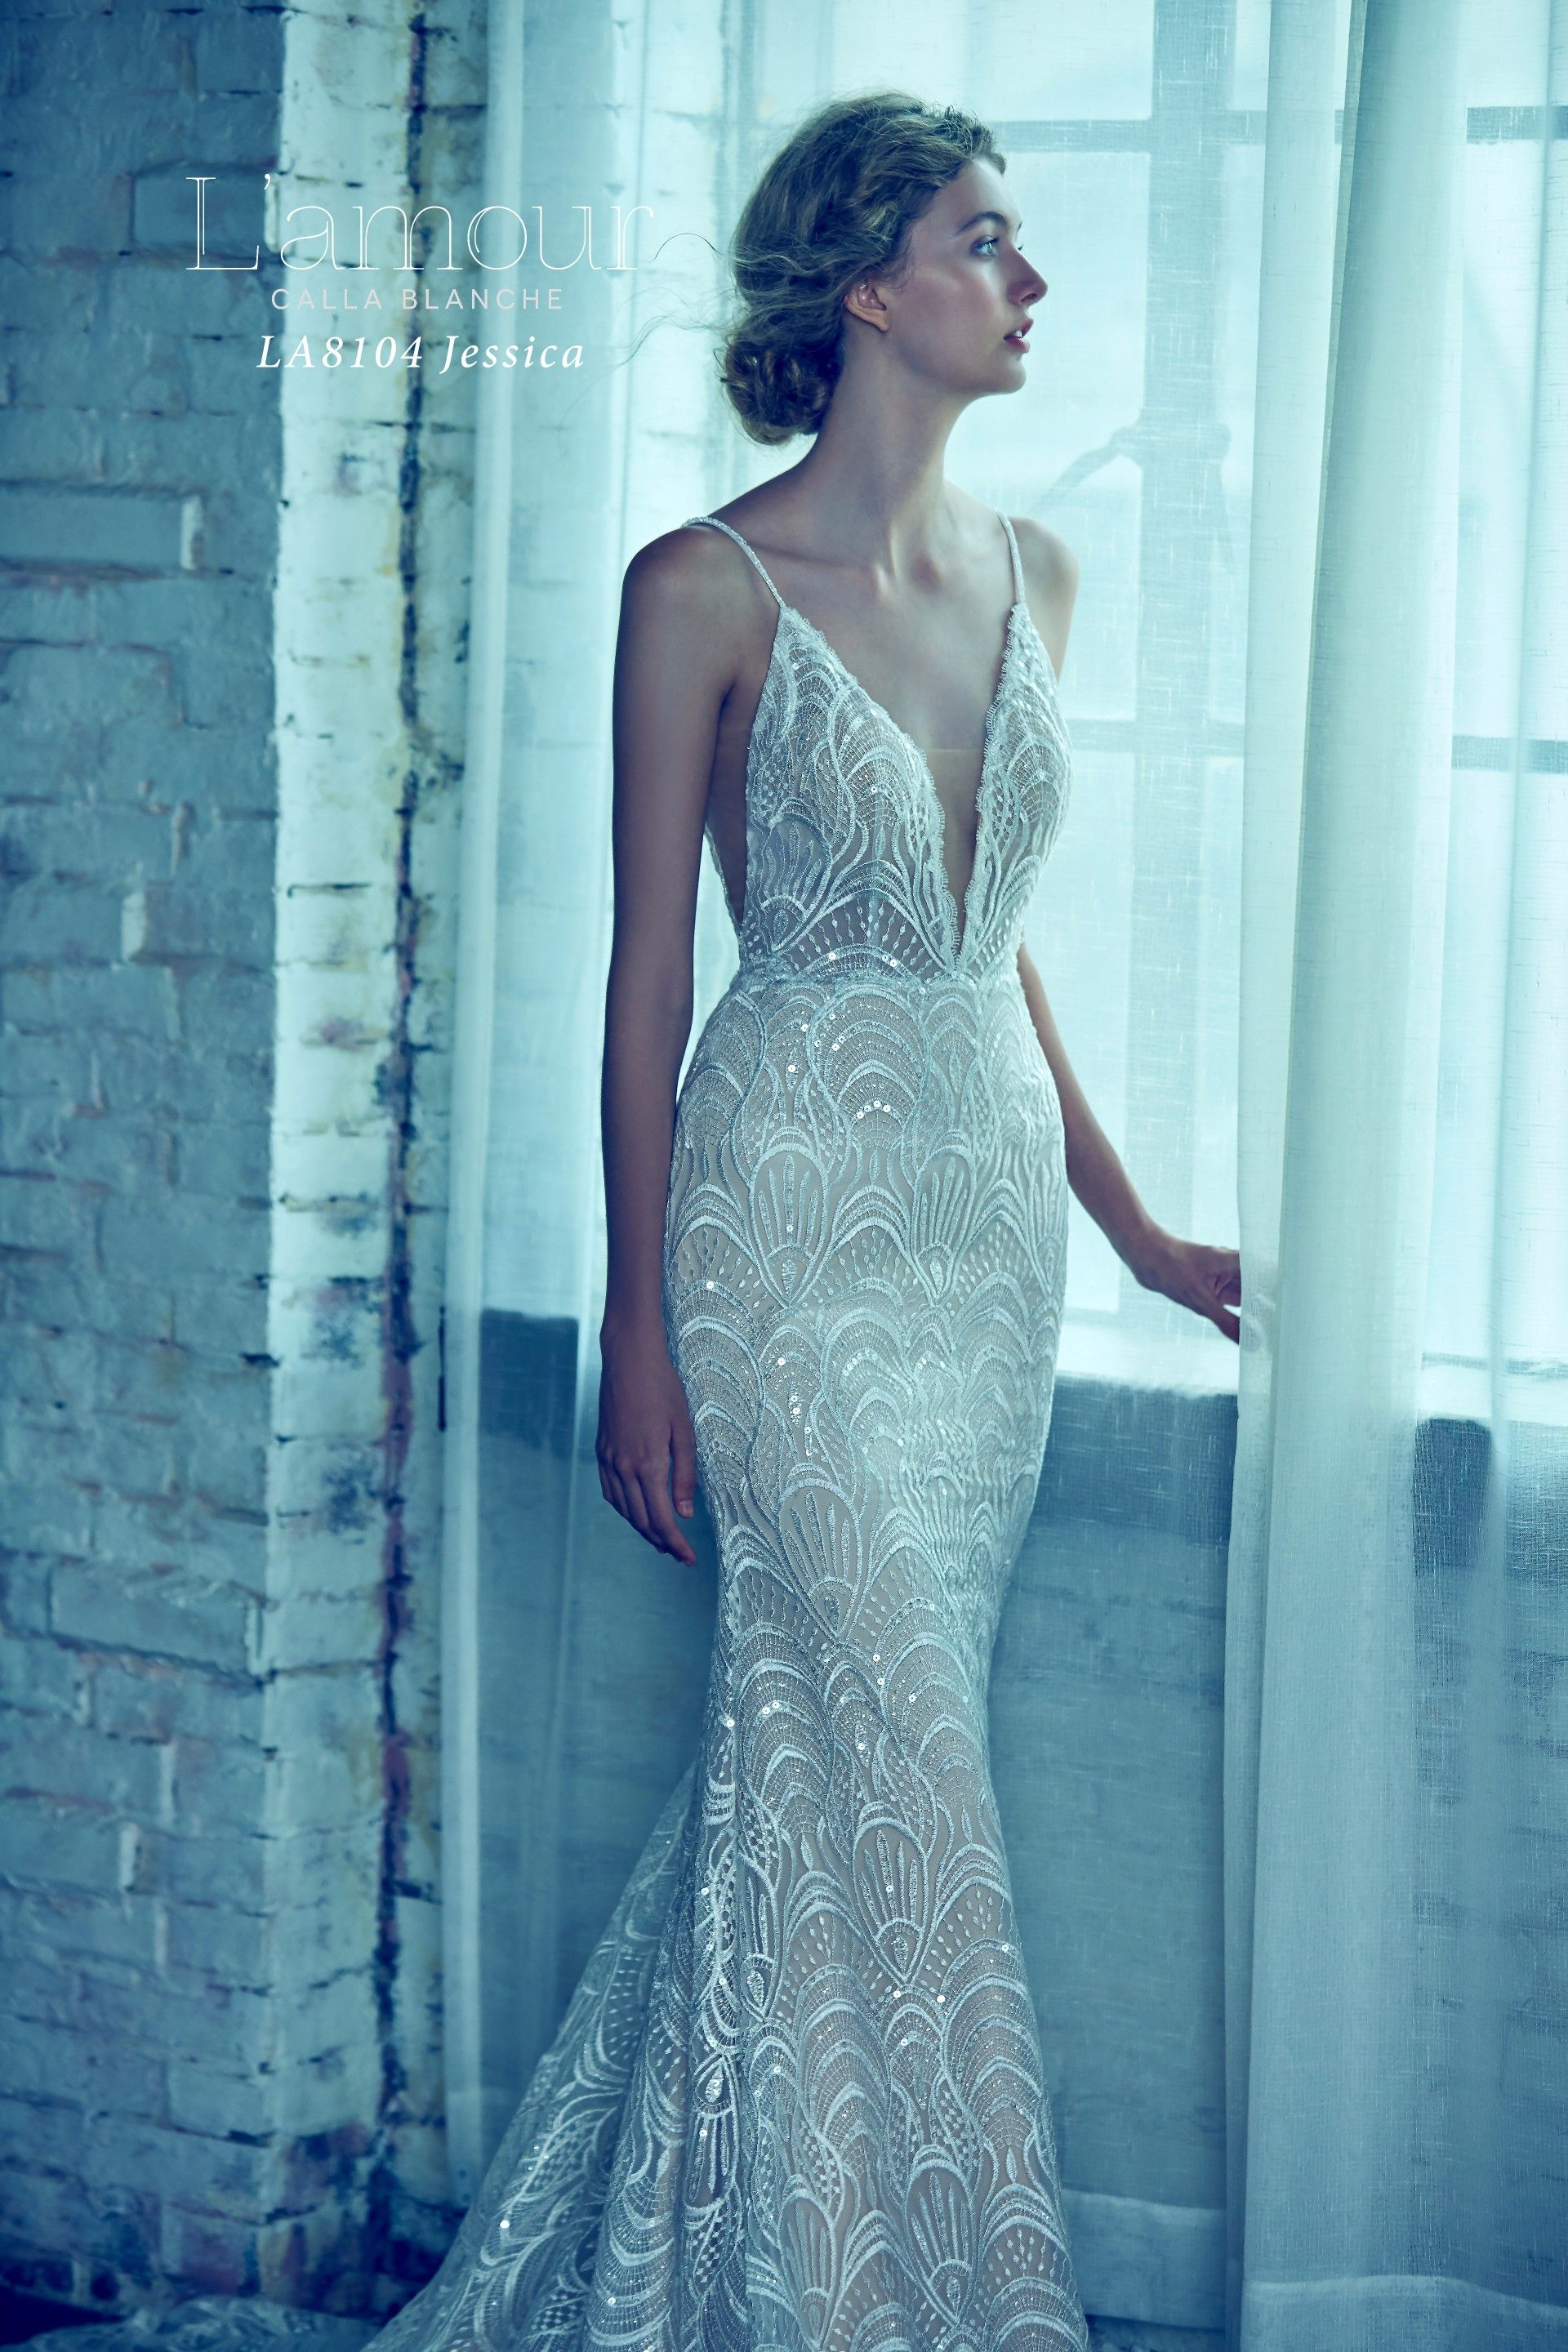 LA8104 Jessica | Formal | Pinterest | Gowns, Wedding dress and Weddings